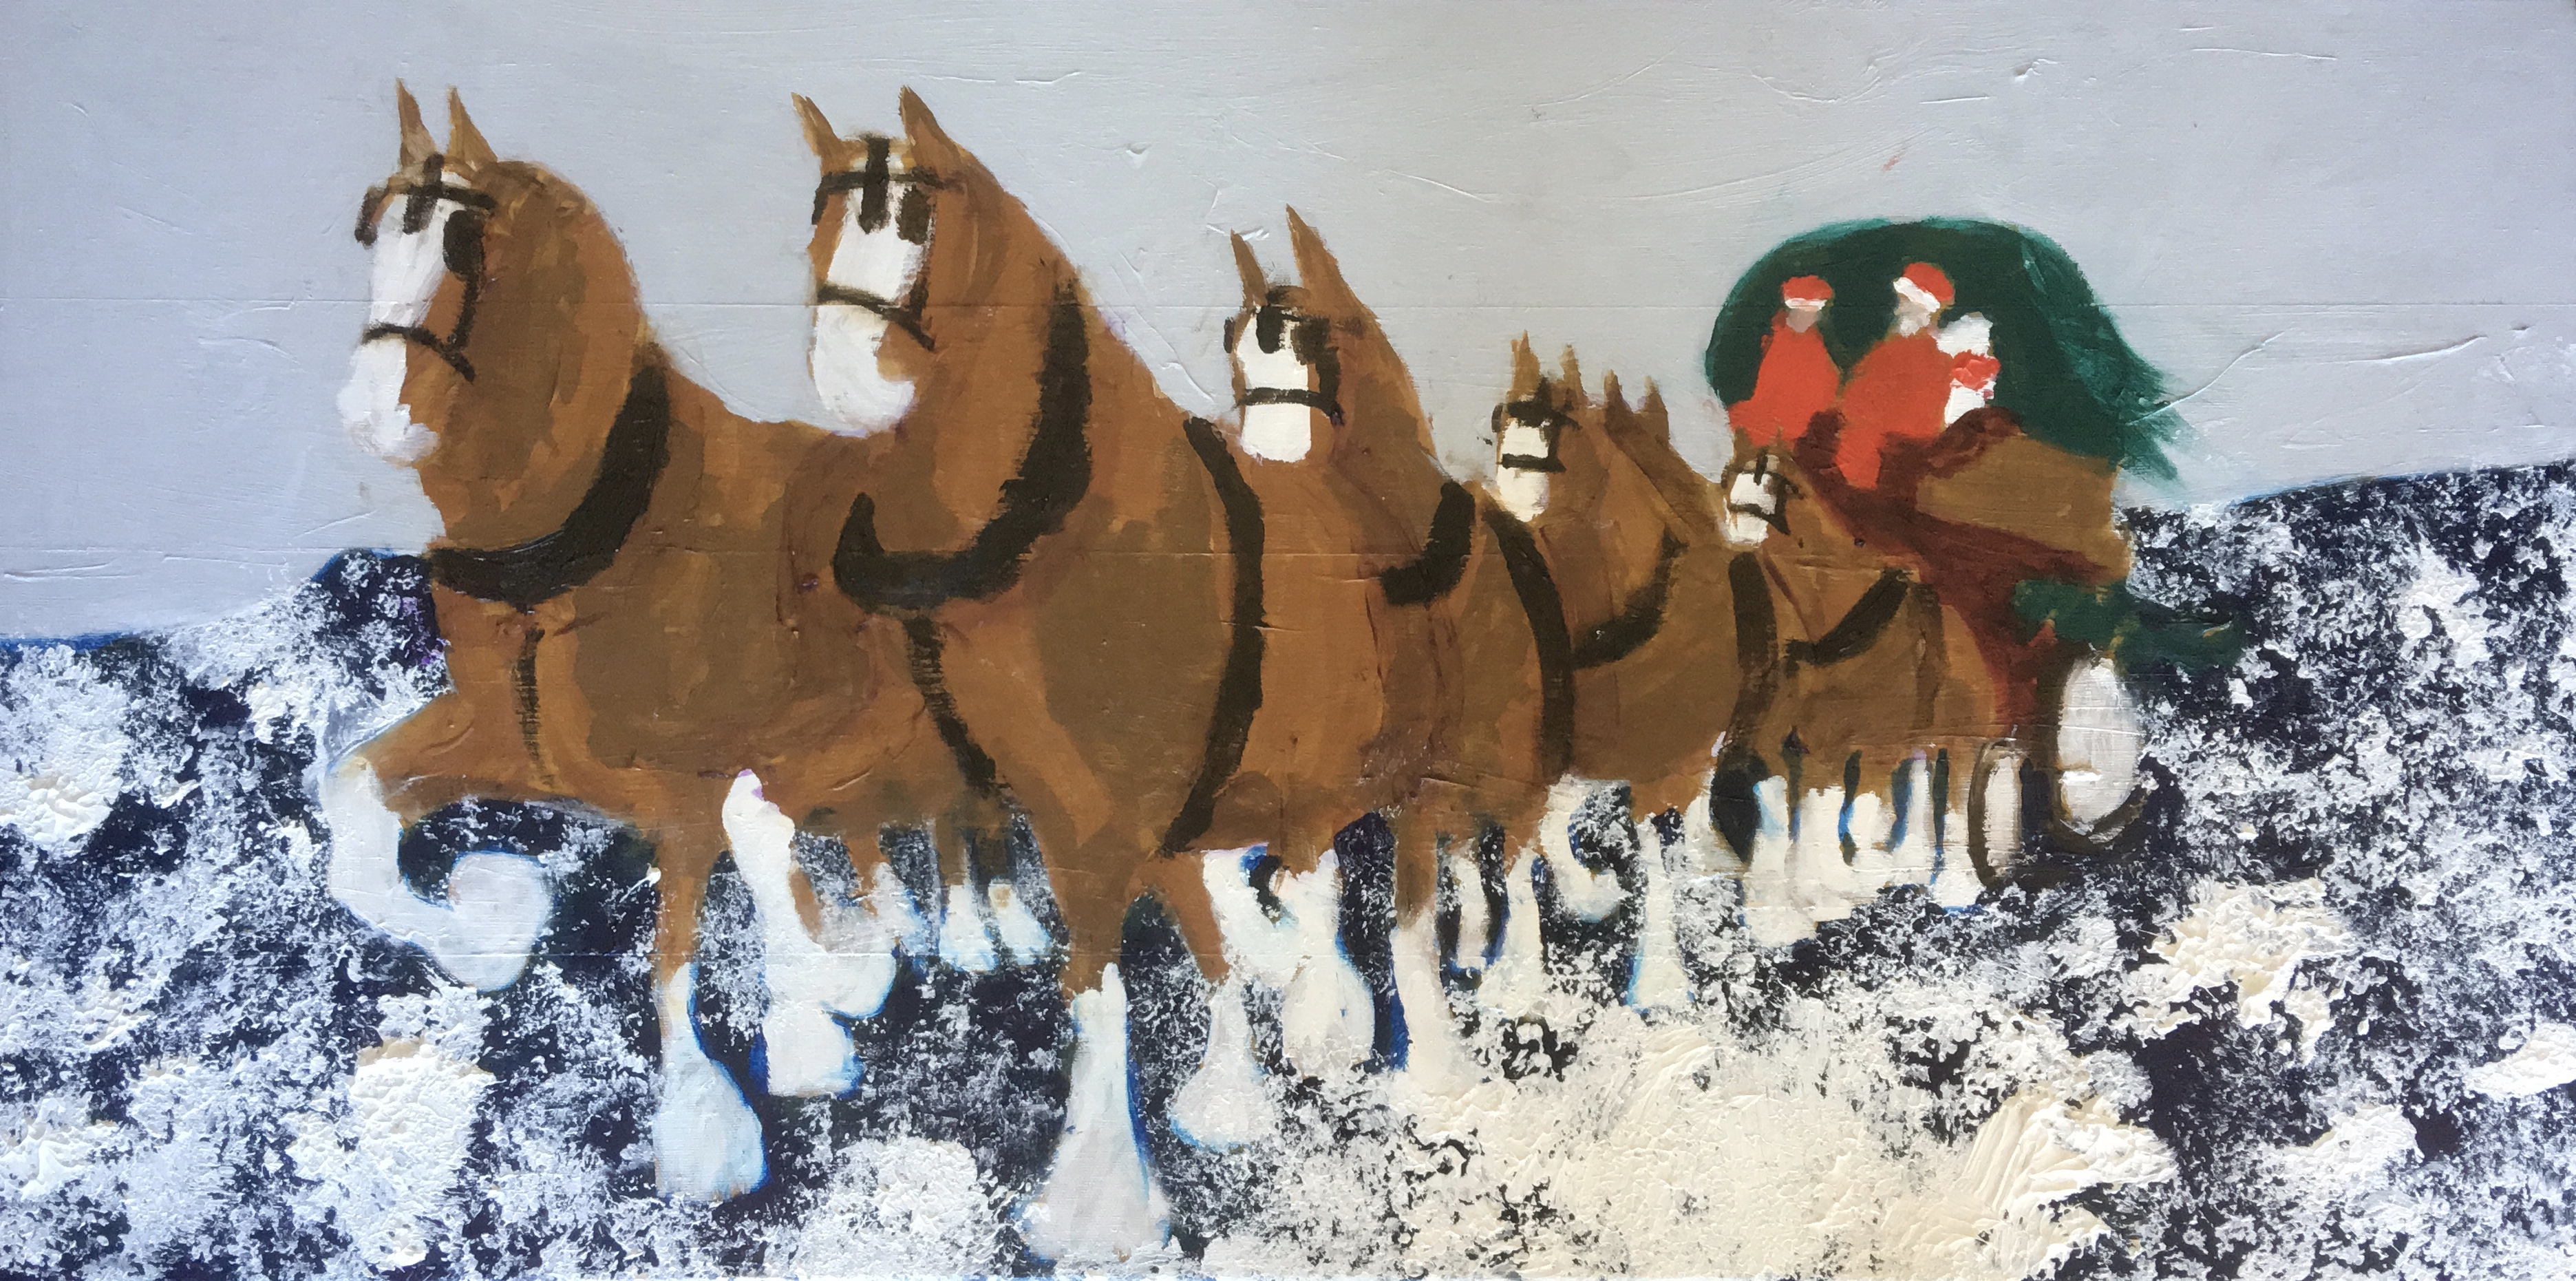 Clydsdales bringing home the Christmas Tree- Original for Sale - Prints Available